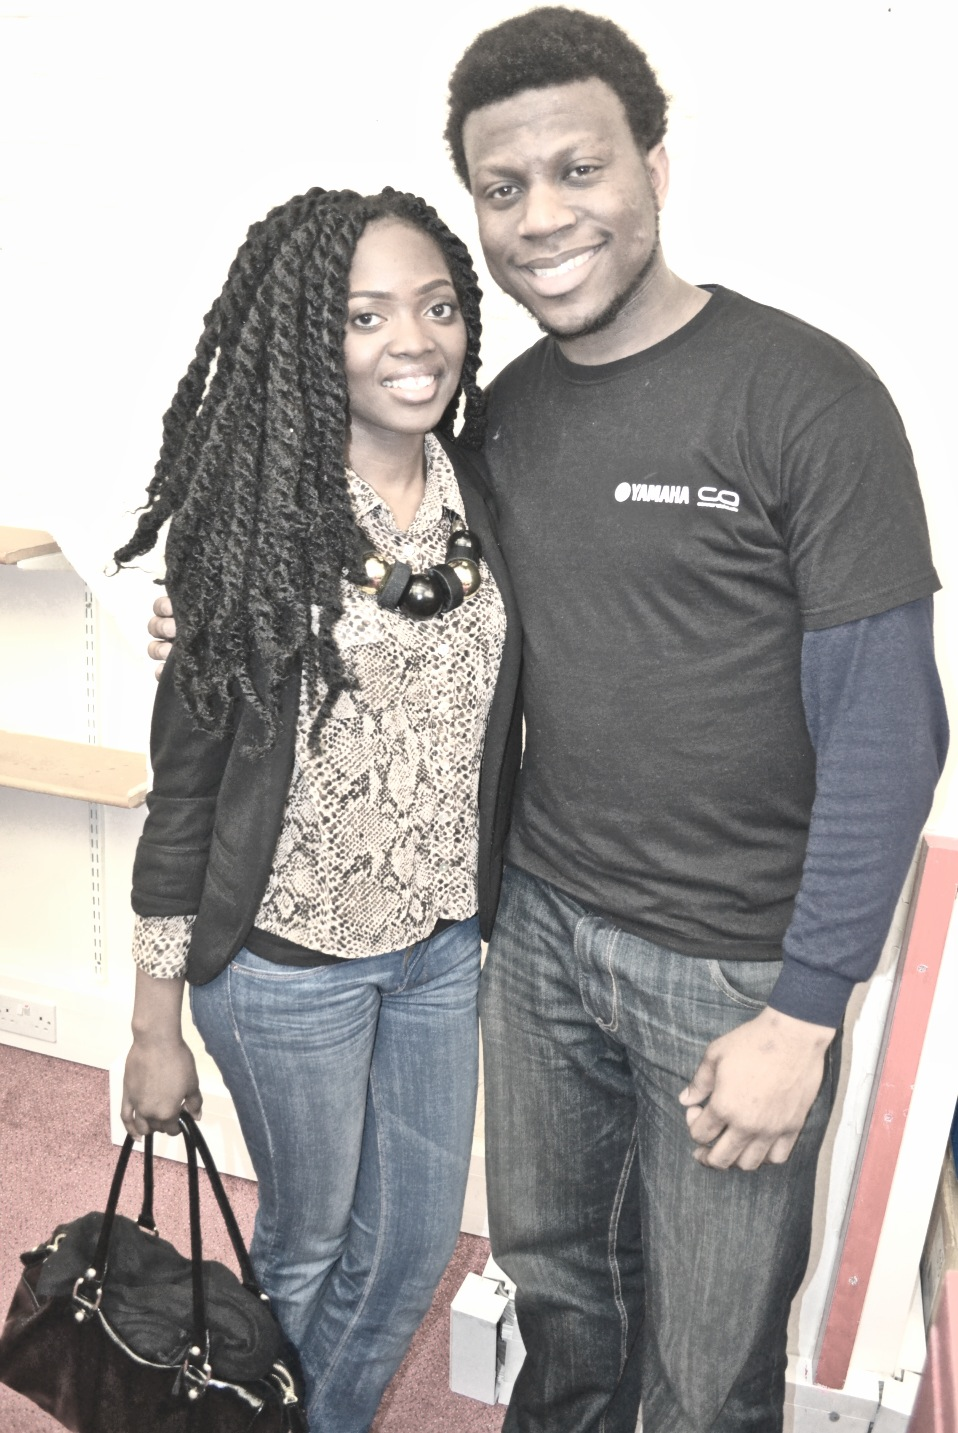 Sola and I